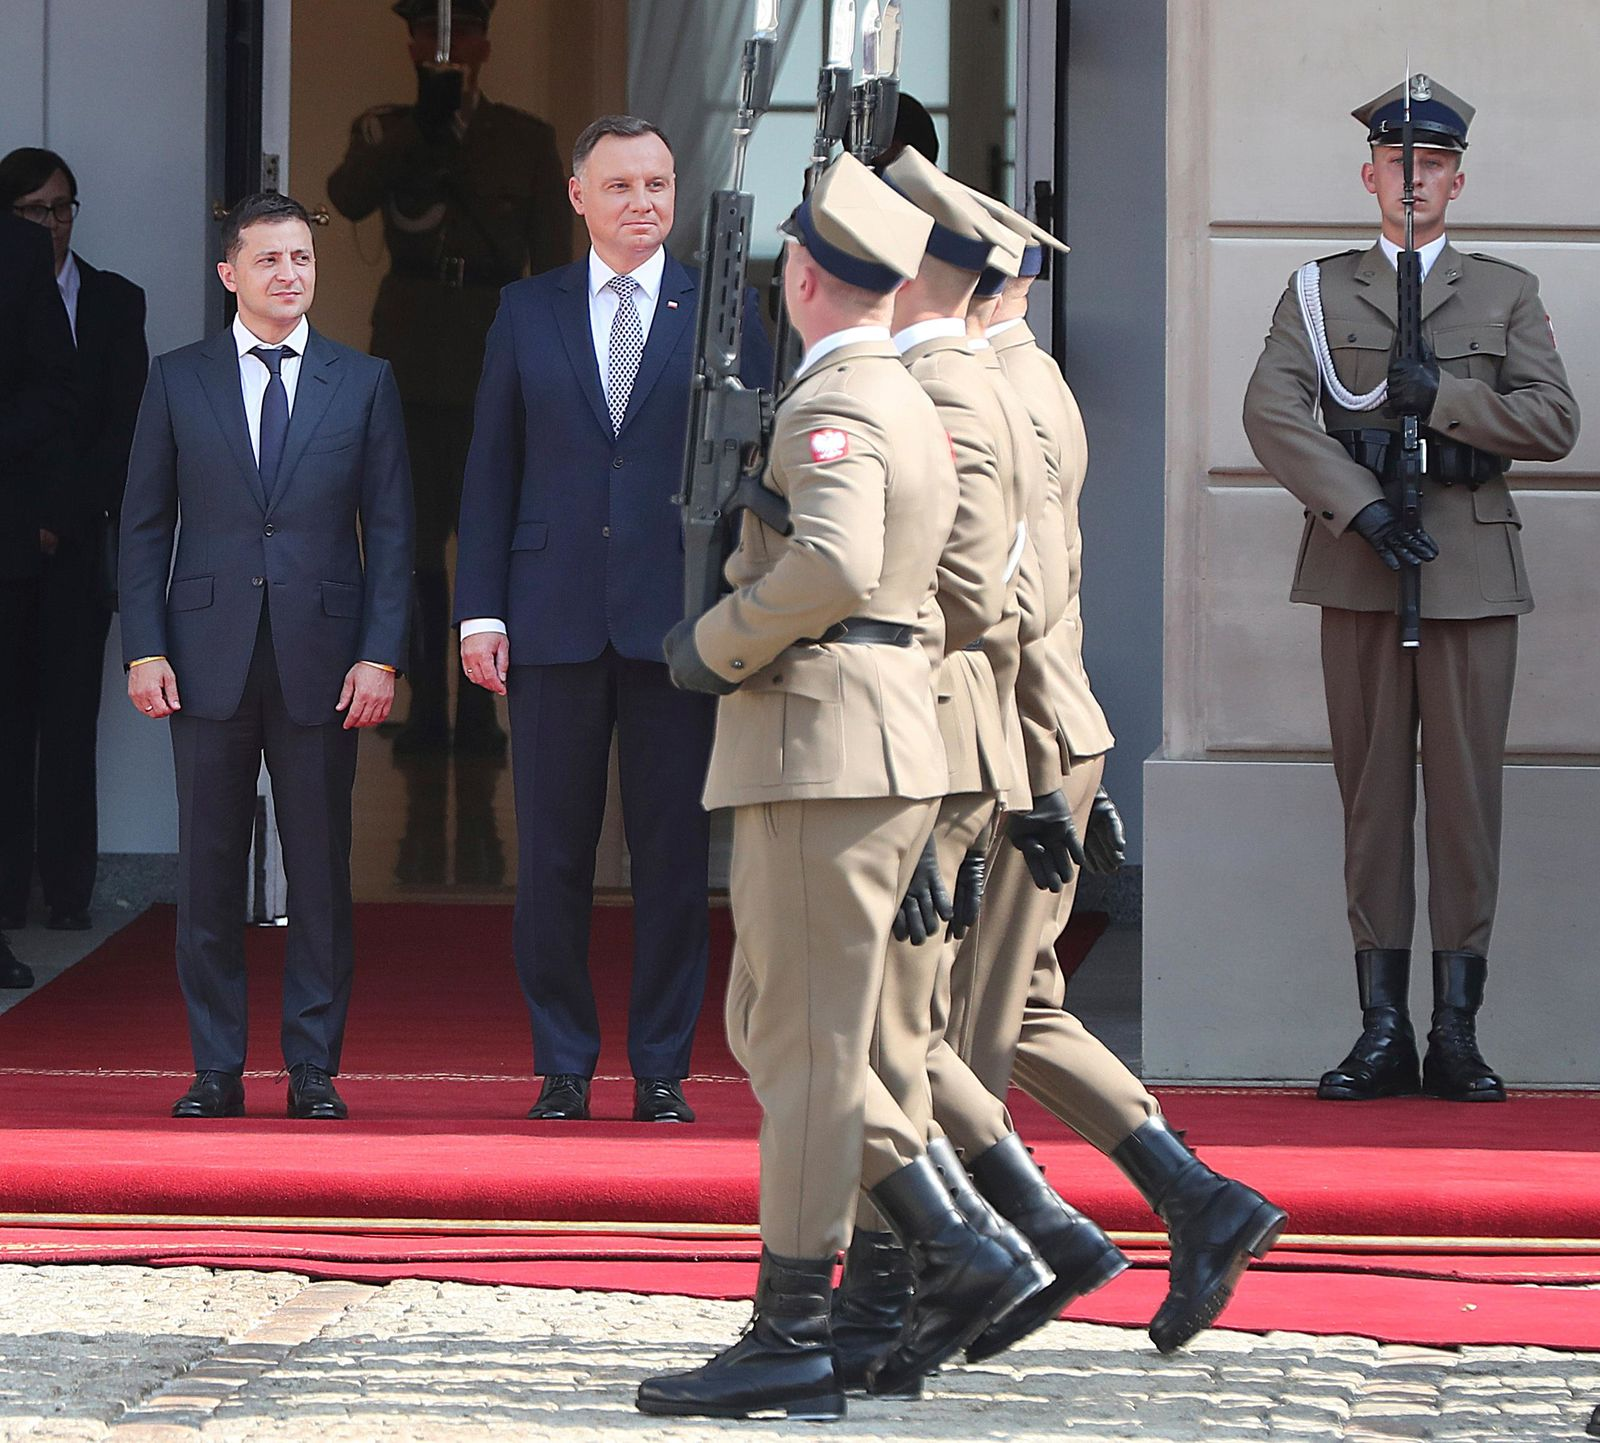 Poland's President Andrzej Duda,center, welcomes Ukraine's President Volodymyr Zelenskiy,left, before talks on bilateral relations and Ukraine's ties with Europe under the new government, in front of the Presidential Place in Warsaw, Poland, Saturday, Aug. 31, 2019. .(AP Photo/Czarek Sokolowski)